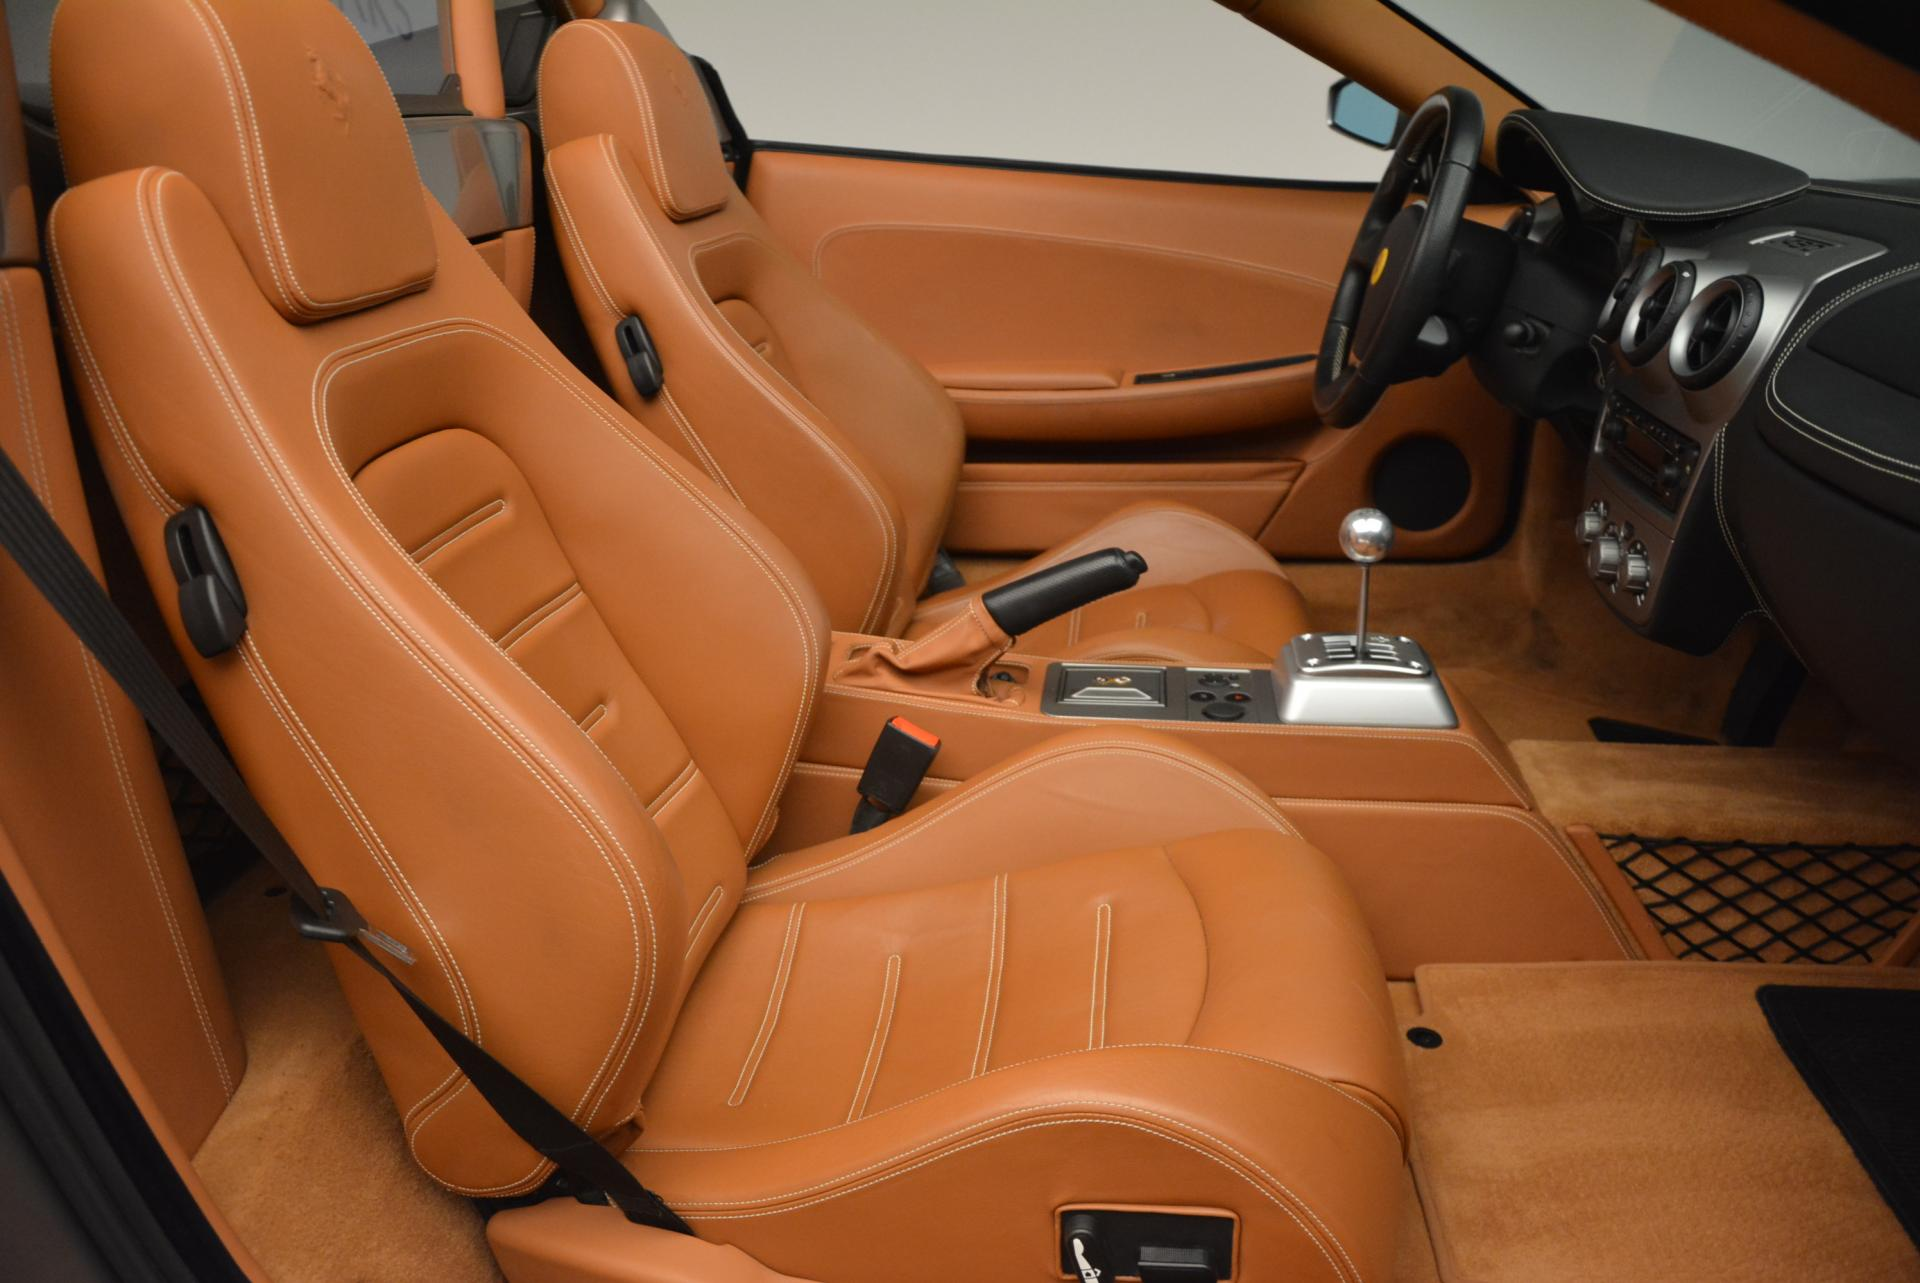 Used 2005 Ferrari F430 Spider 6-Speed Manual For Sale In Greenwich, CT 135_p31